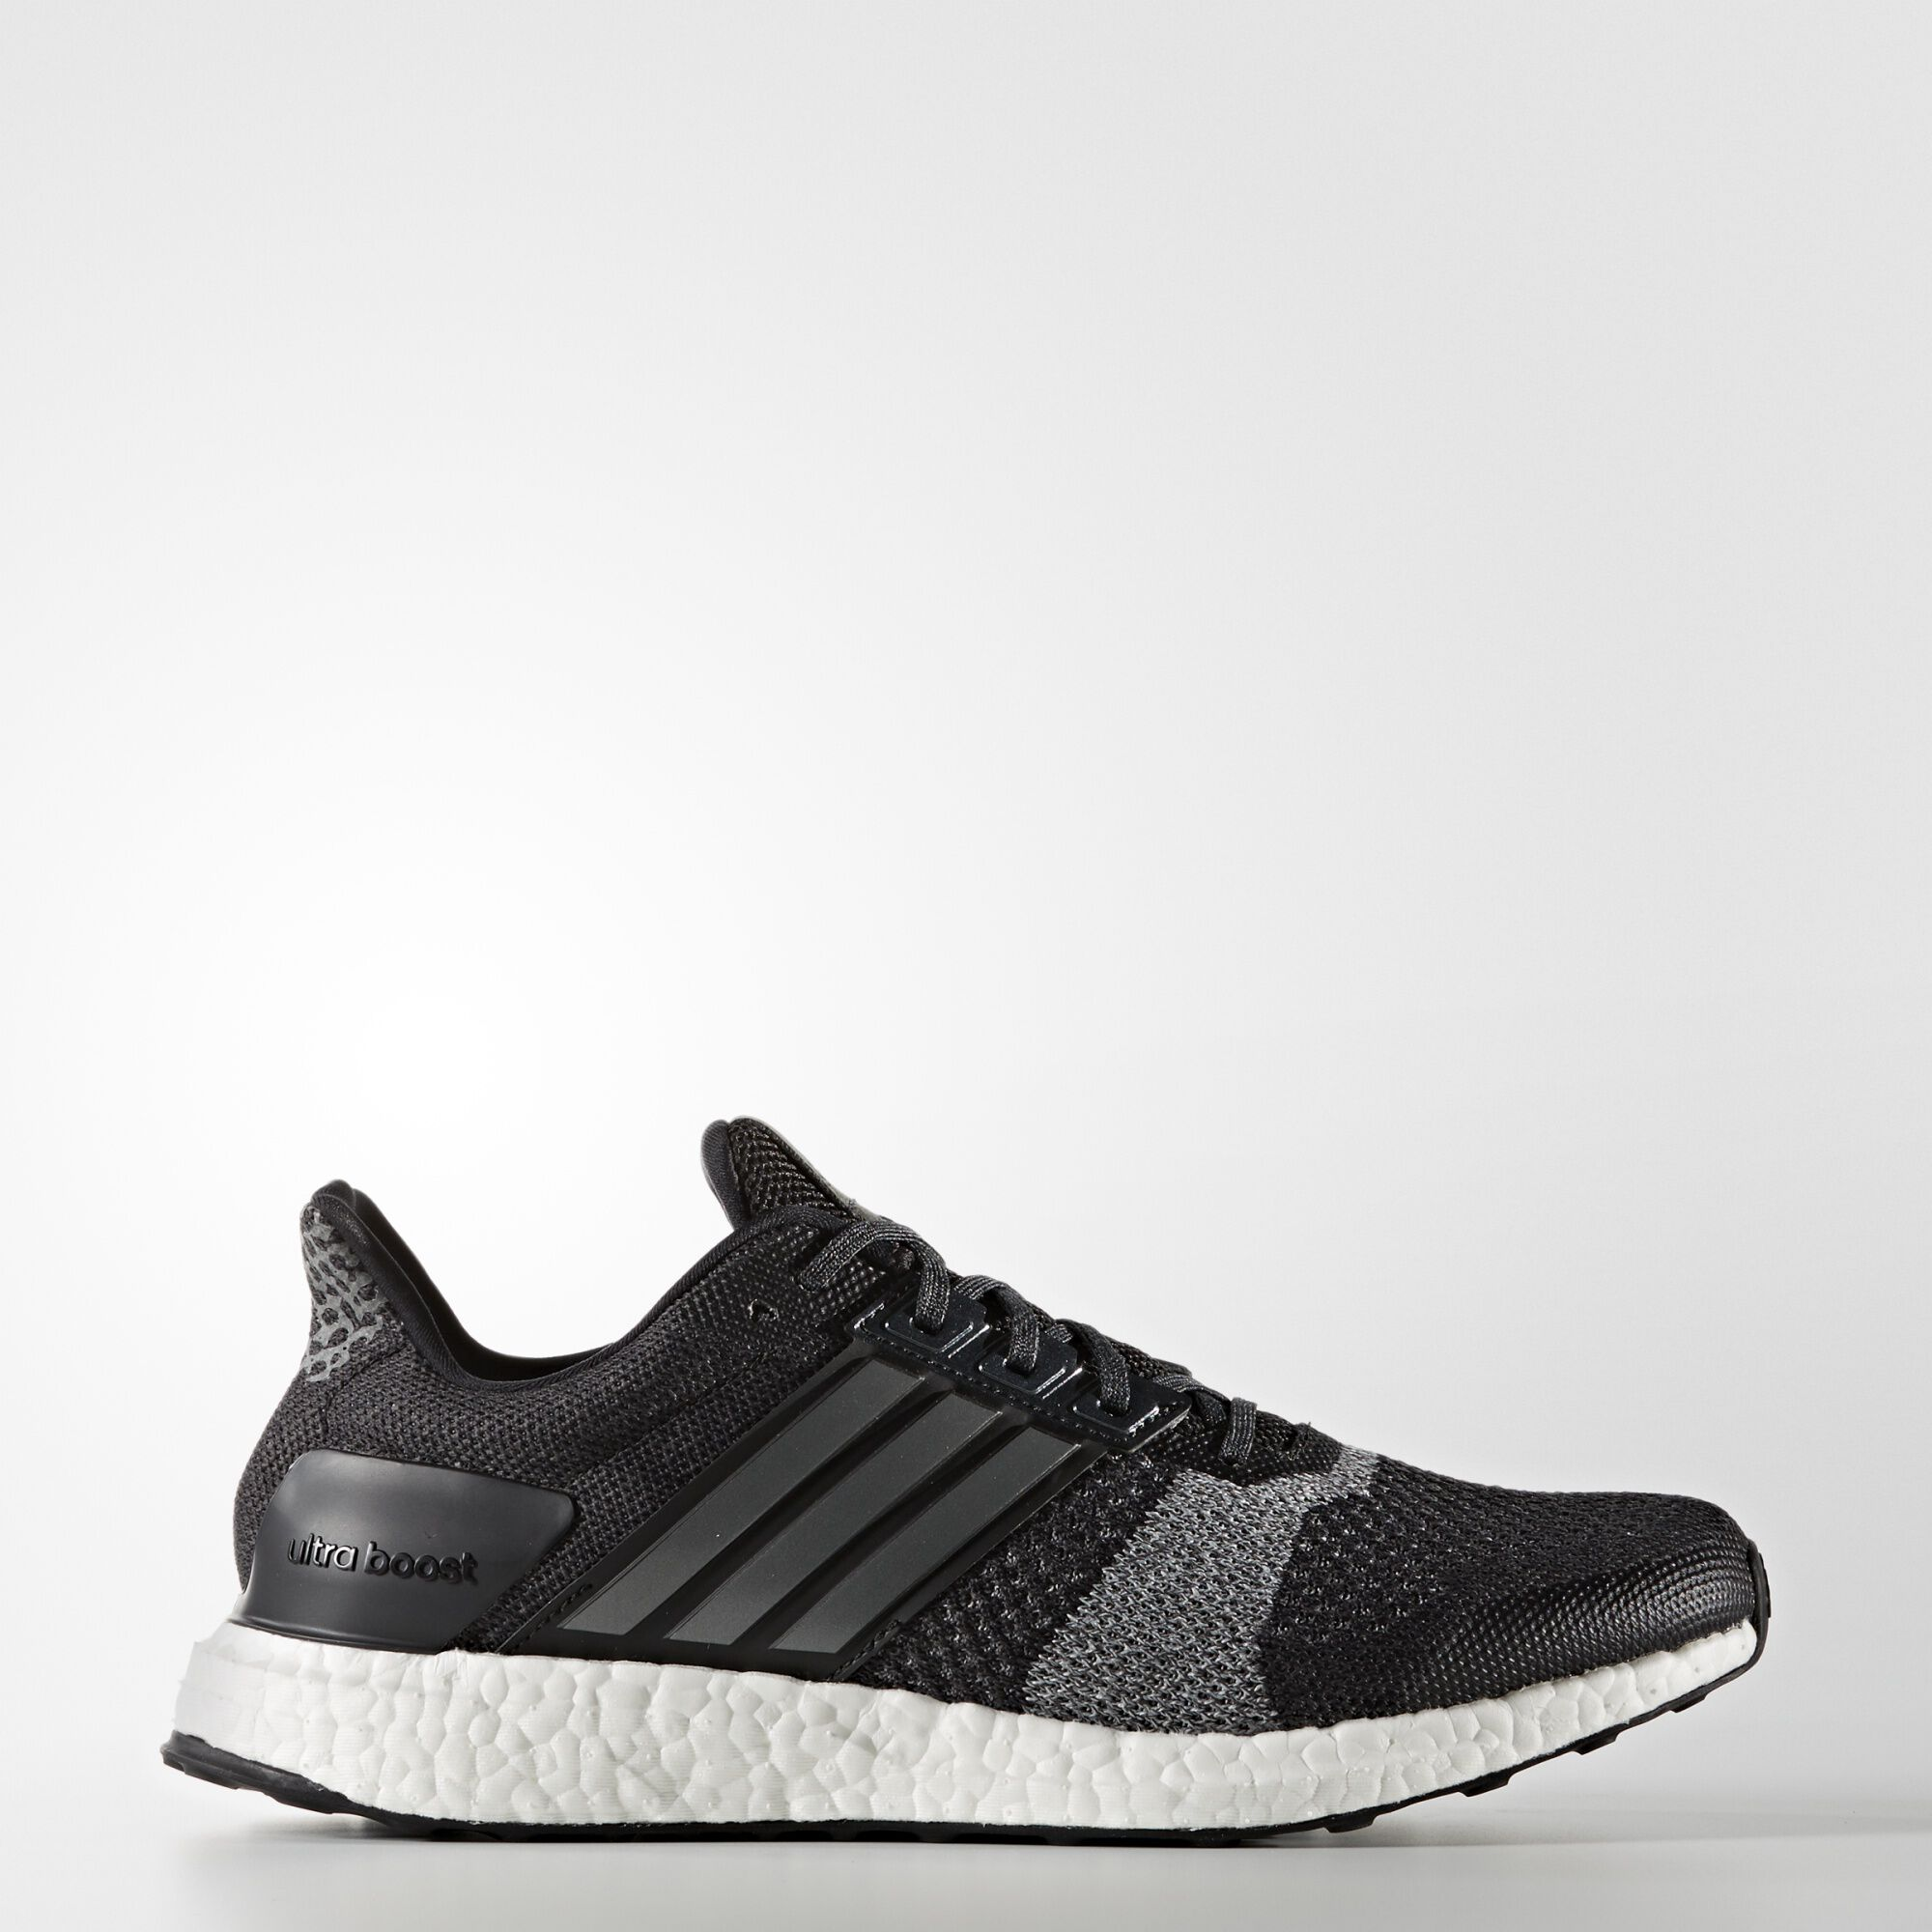 Adidas Ultra Boost Black 3.0